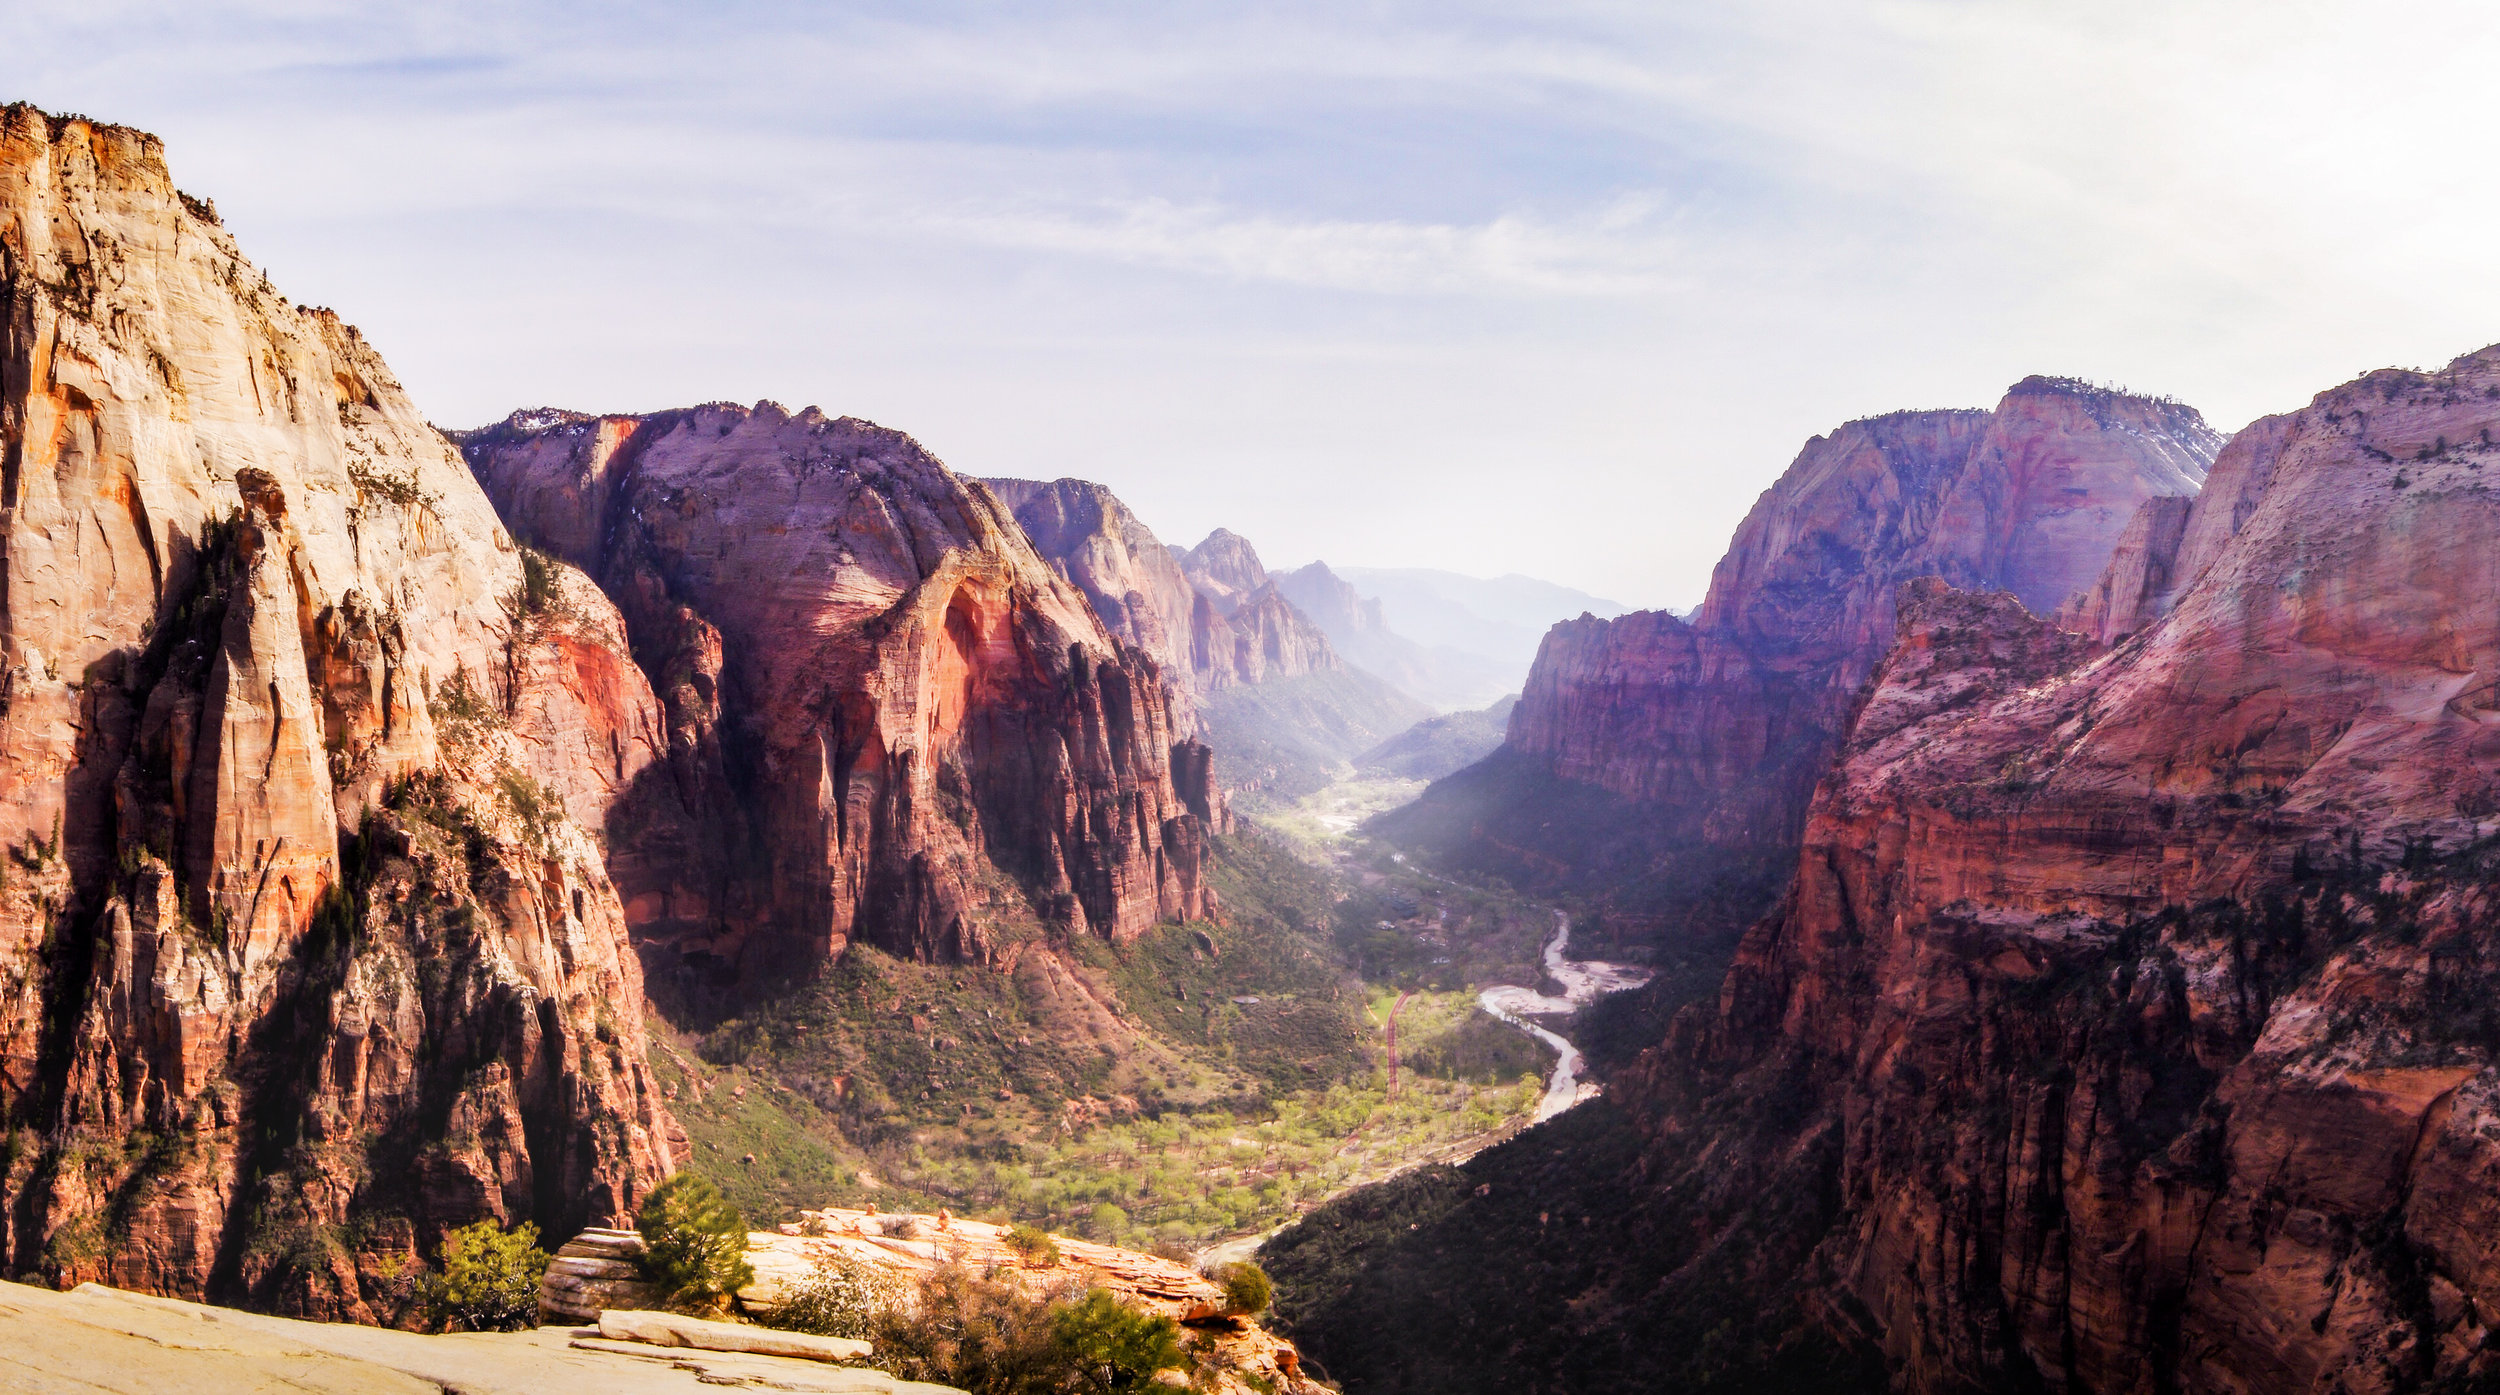 The view of the valley at Zion National Park from Angels Landing. Photo by Zygmunt Spray.